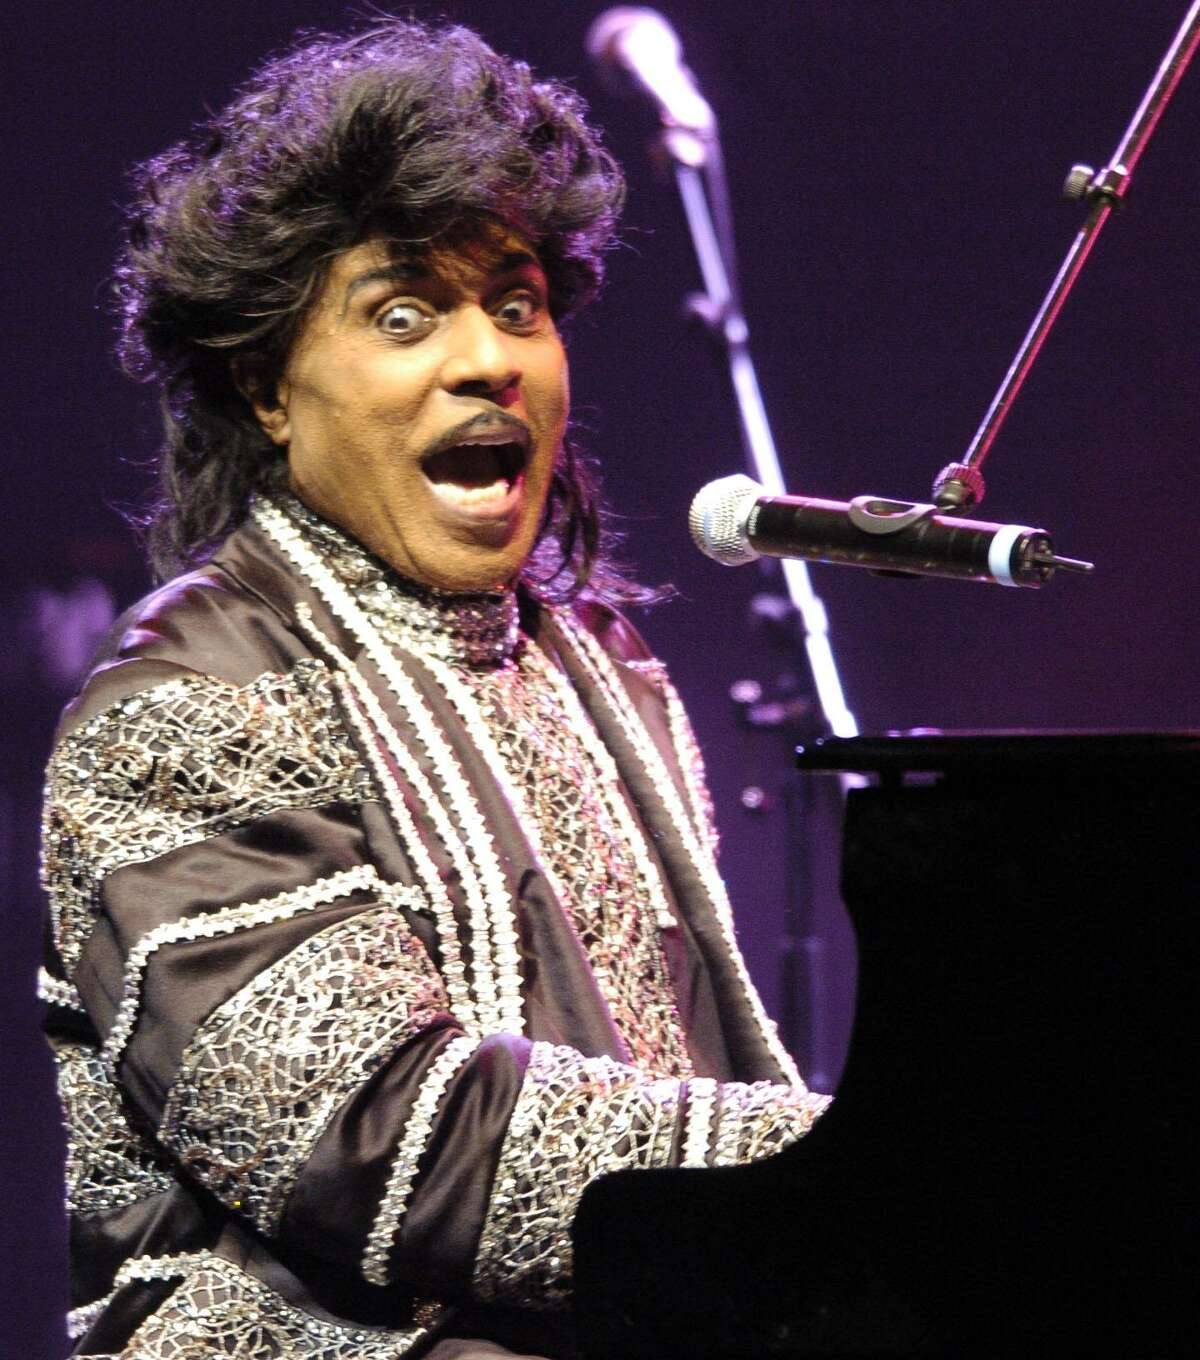 Through the fury with which he attacked the piano, and the amazing power and elasticity of his voice, Little Richard was a flamboyant force of nature. His musical legacy can be found in an array of artists.